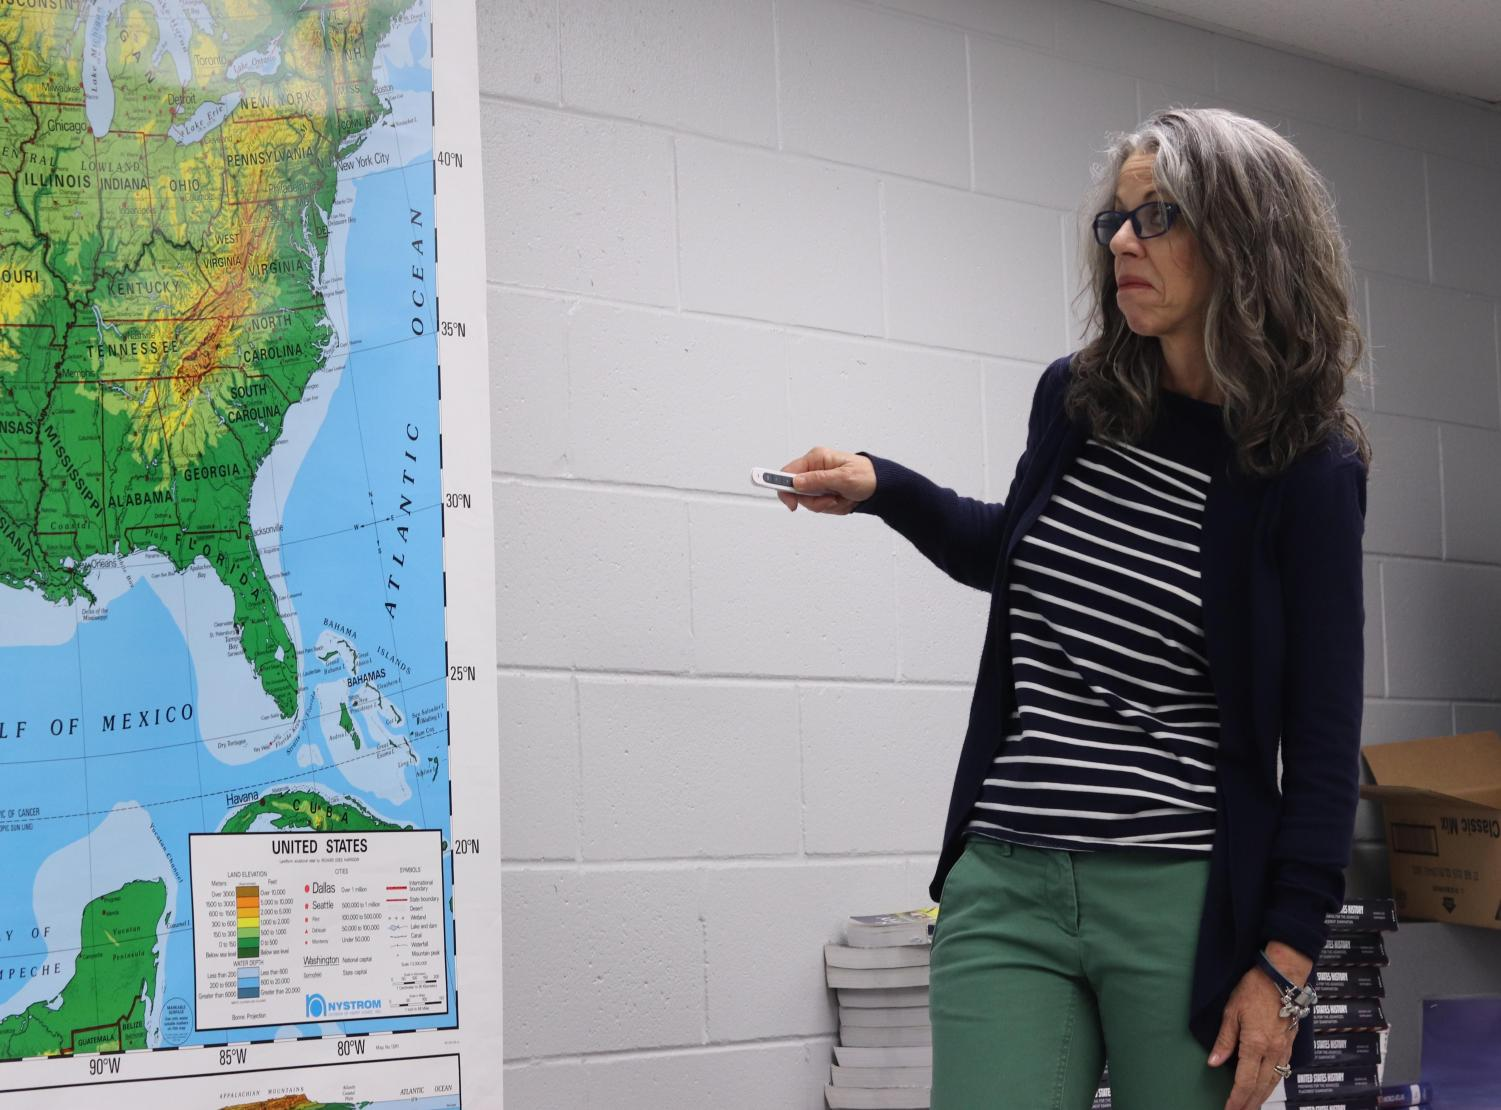 What's wrong with California?-History teacher Robin Grenz points to California on the map. She is working towards retirement and will not fulfill her position next year.